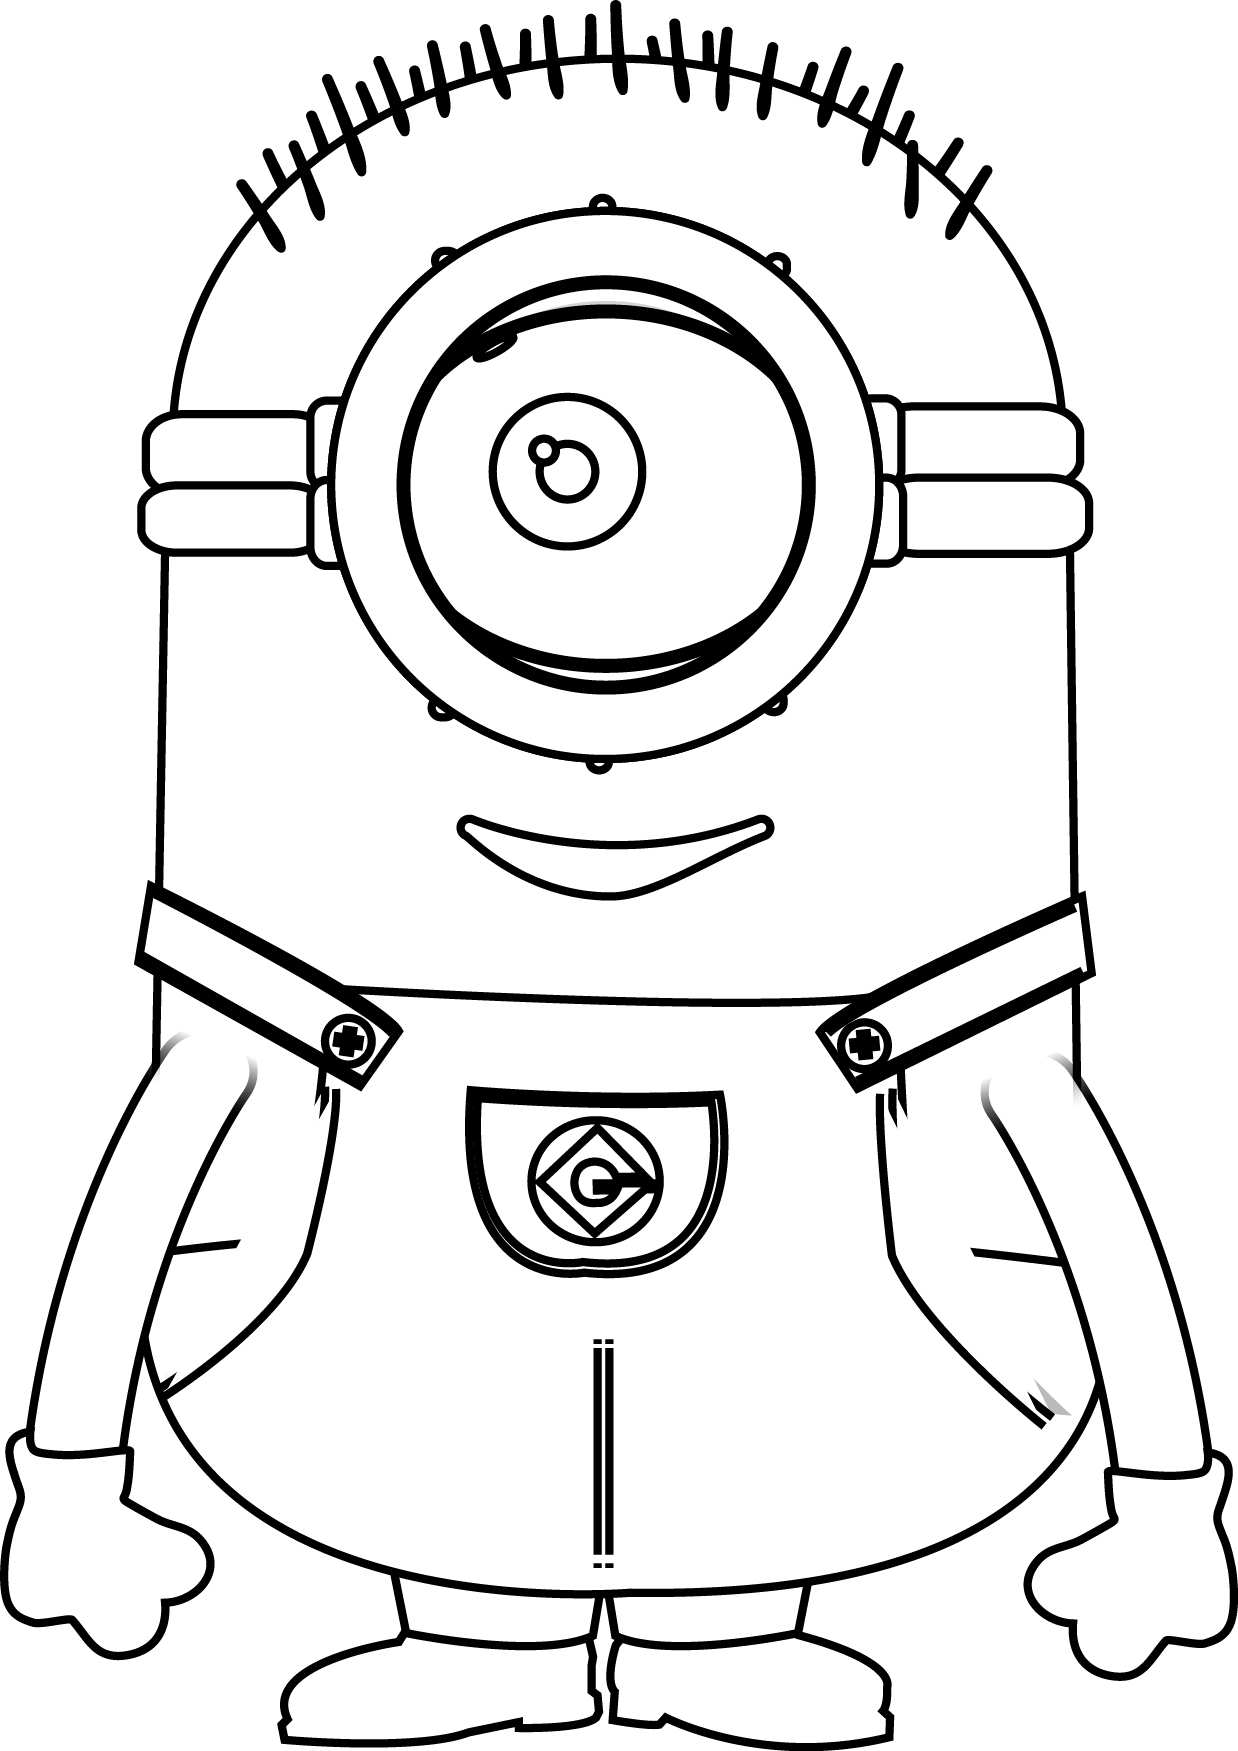 Minions Very Cute Goodness Coloring Page